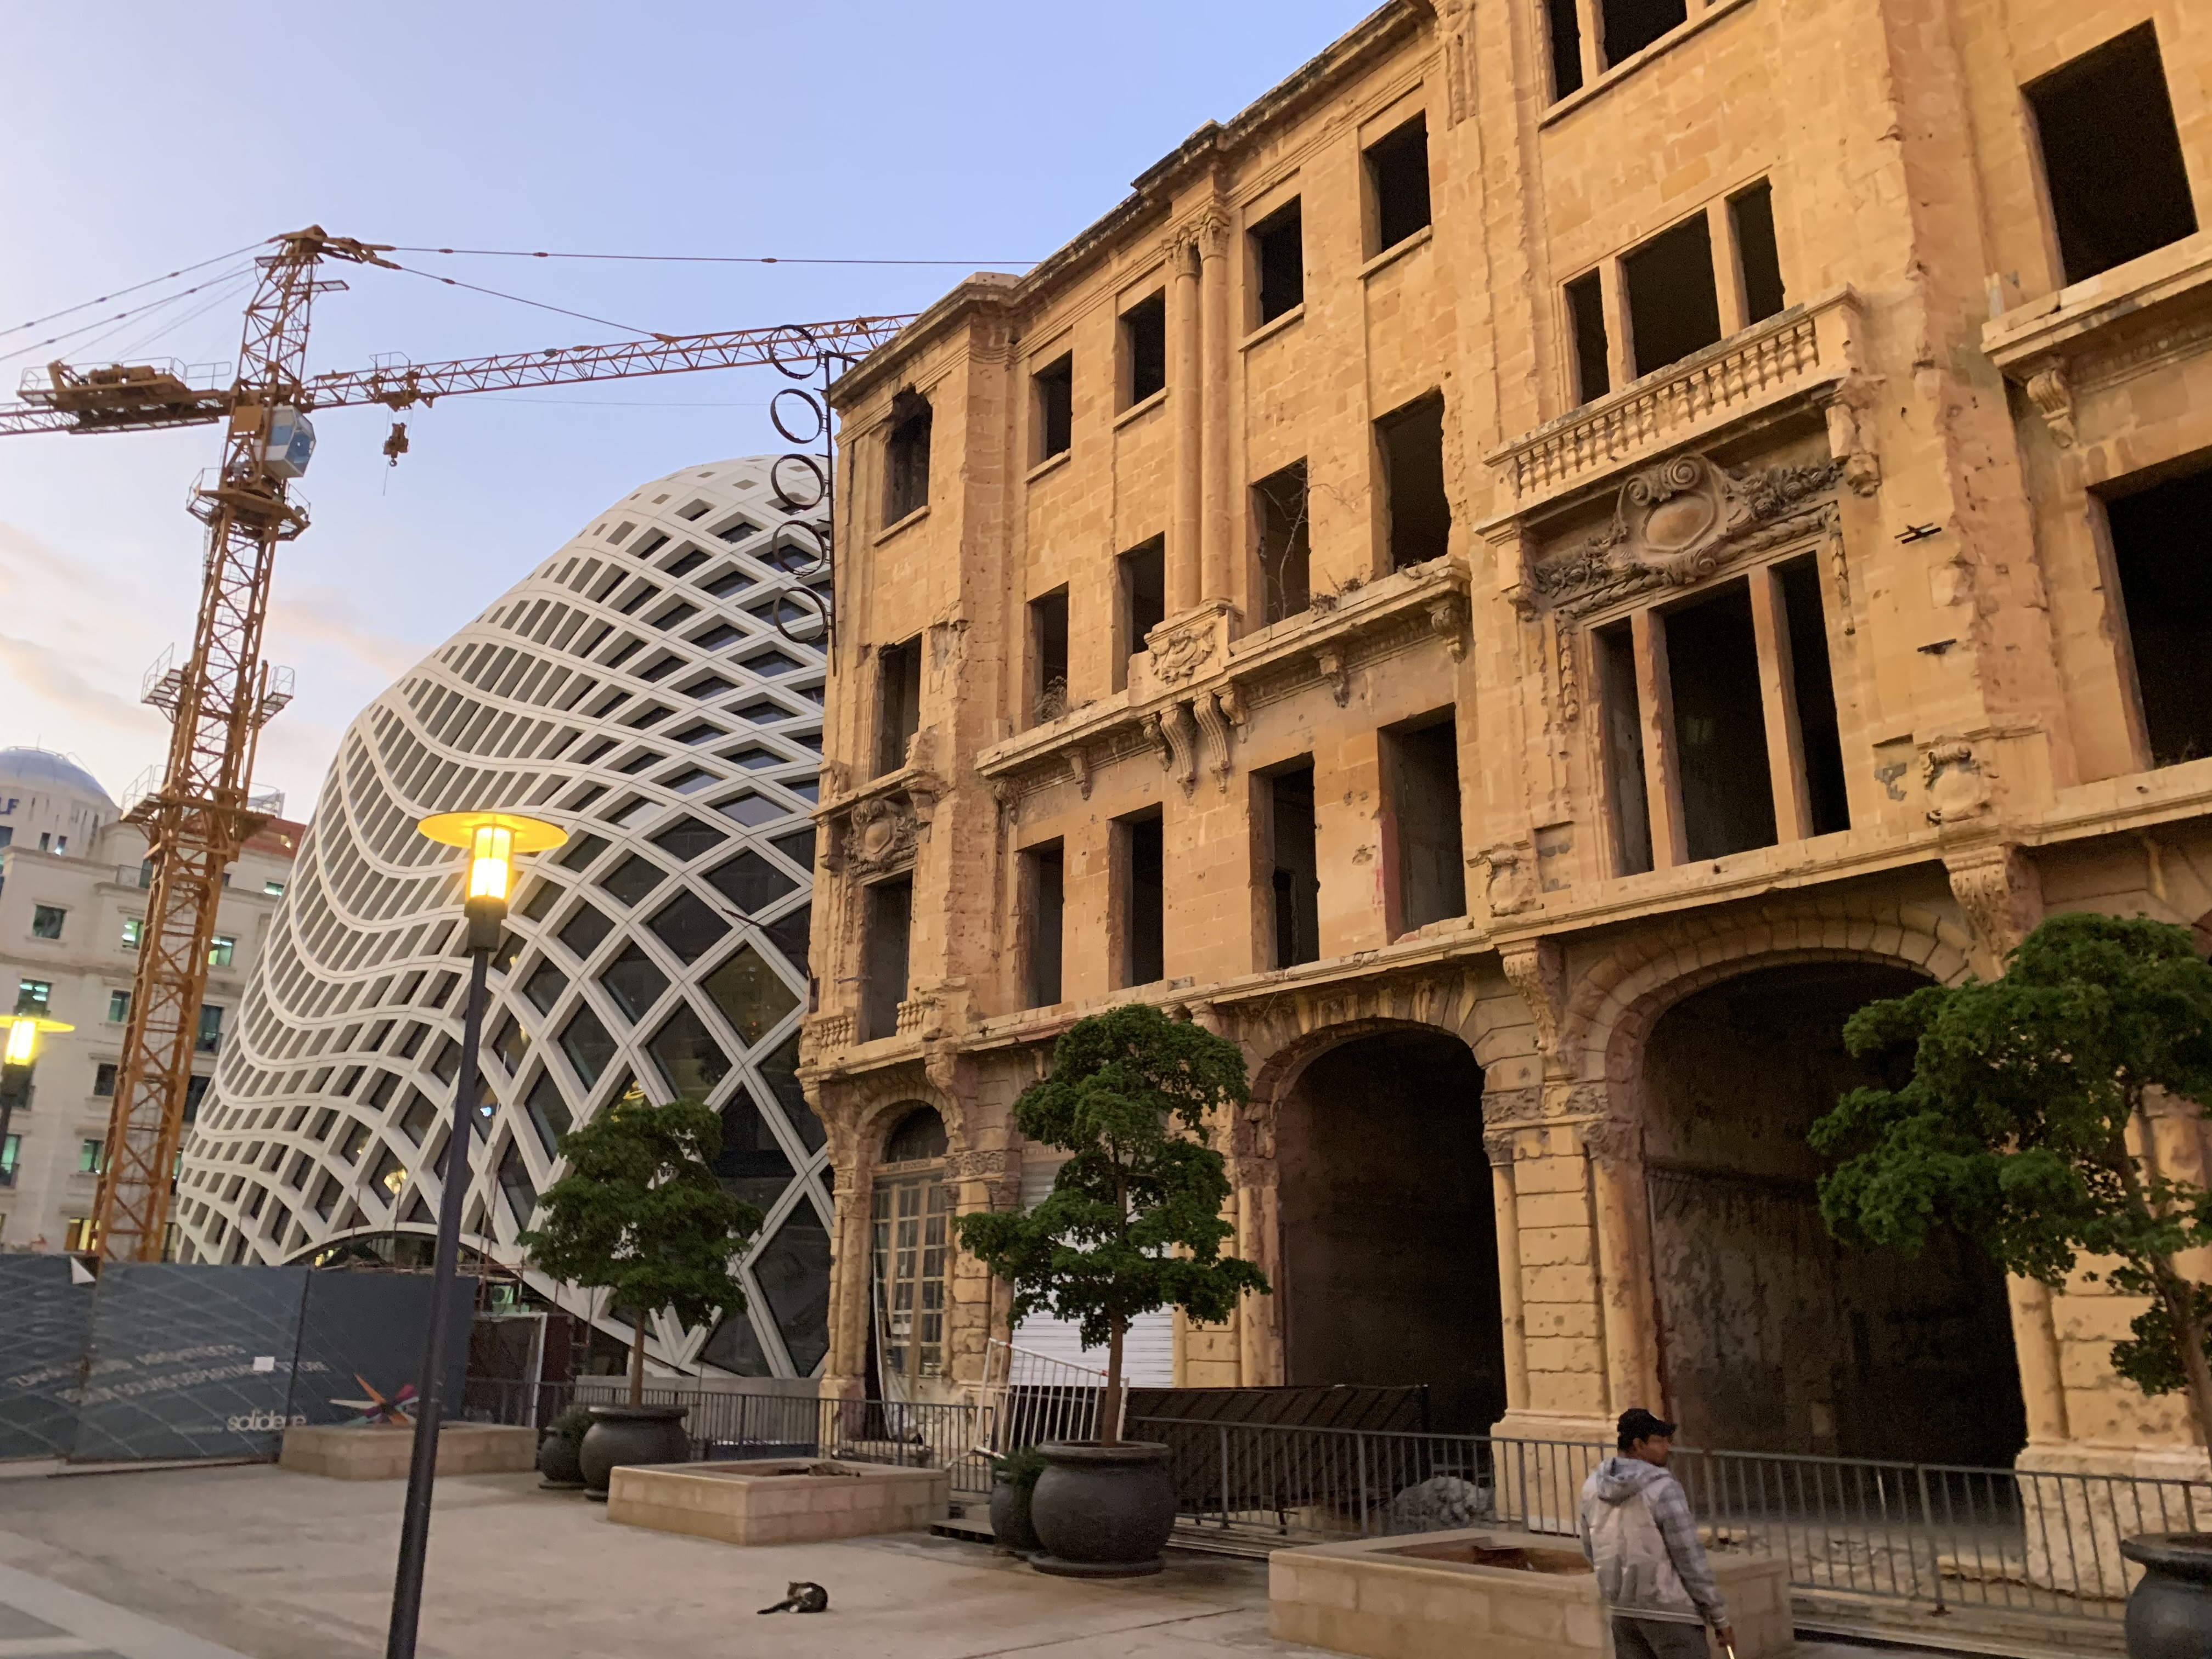 An old war-torn building standing next to a modern architectural marvel in downtown Beirut